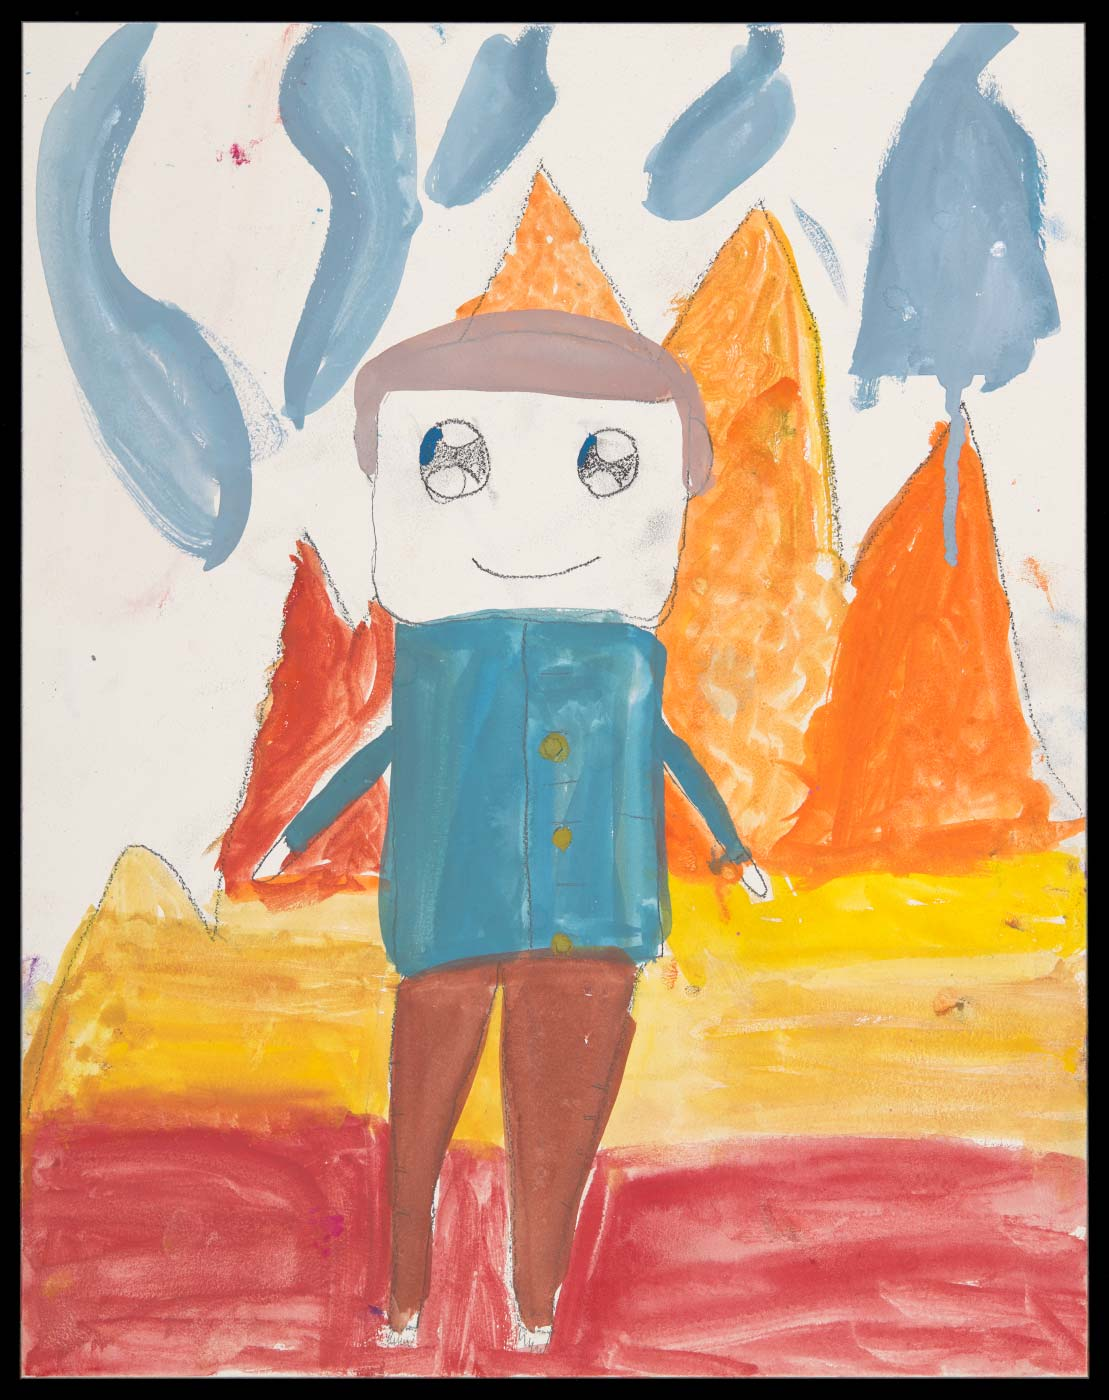 Painting on aquabord, depicting a figure with a bue shirt and brown trousers, standing on ground that is yellow and red, with orange peaks in the background and blue streaks in the sky. - click to view larger image